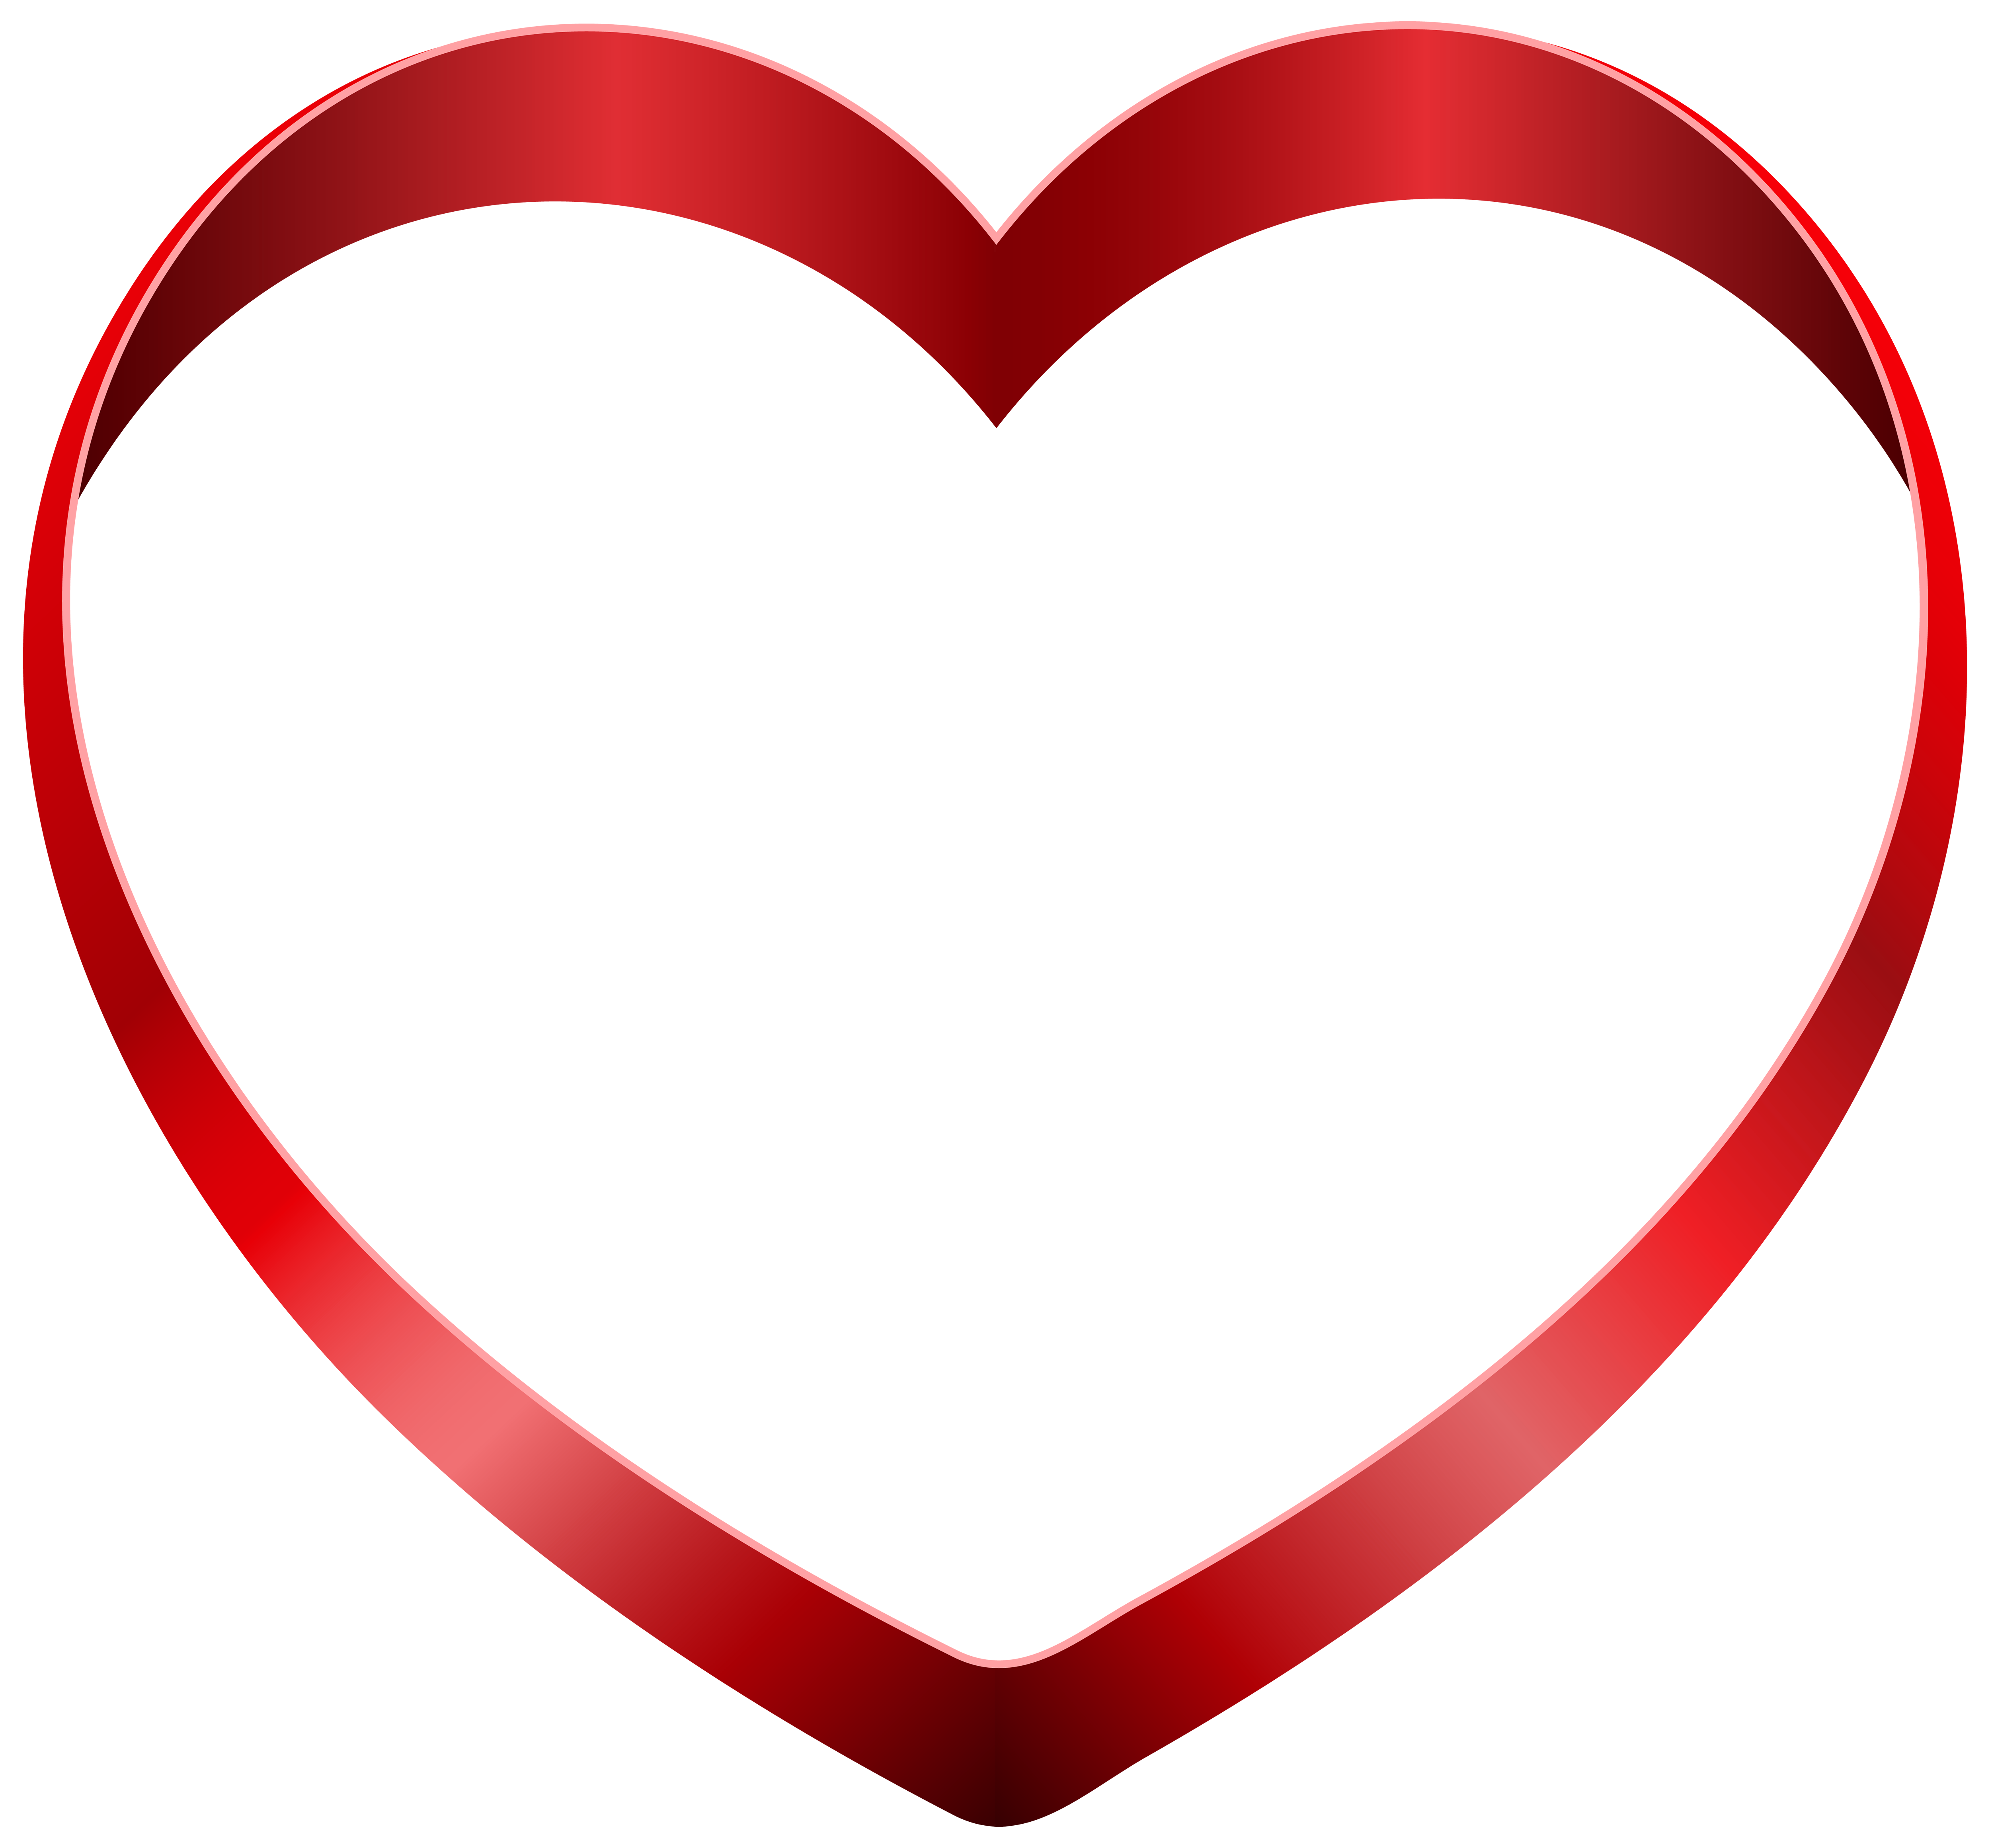 Transparent heart icon blue. Hearts png images